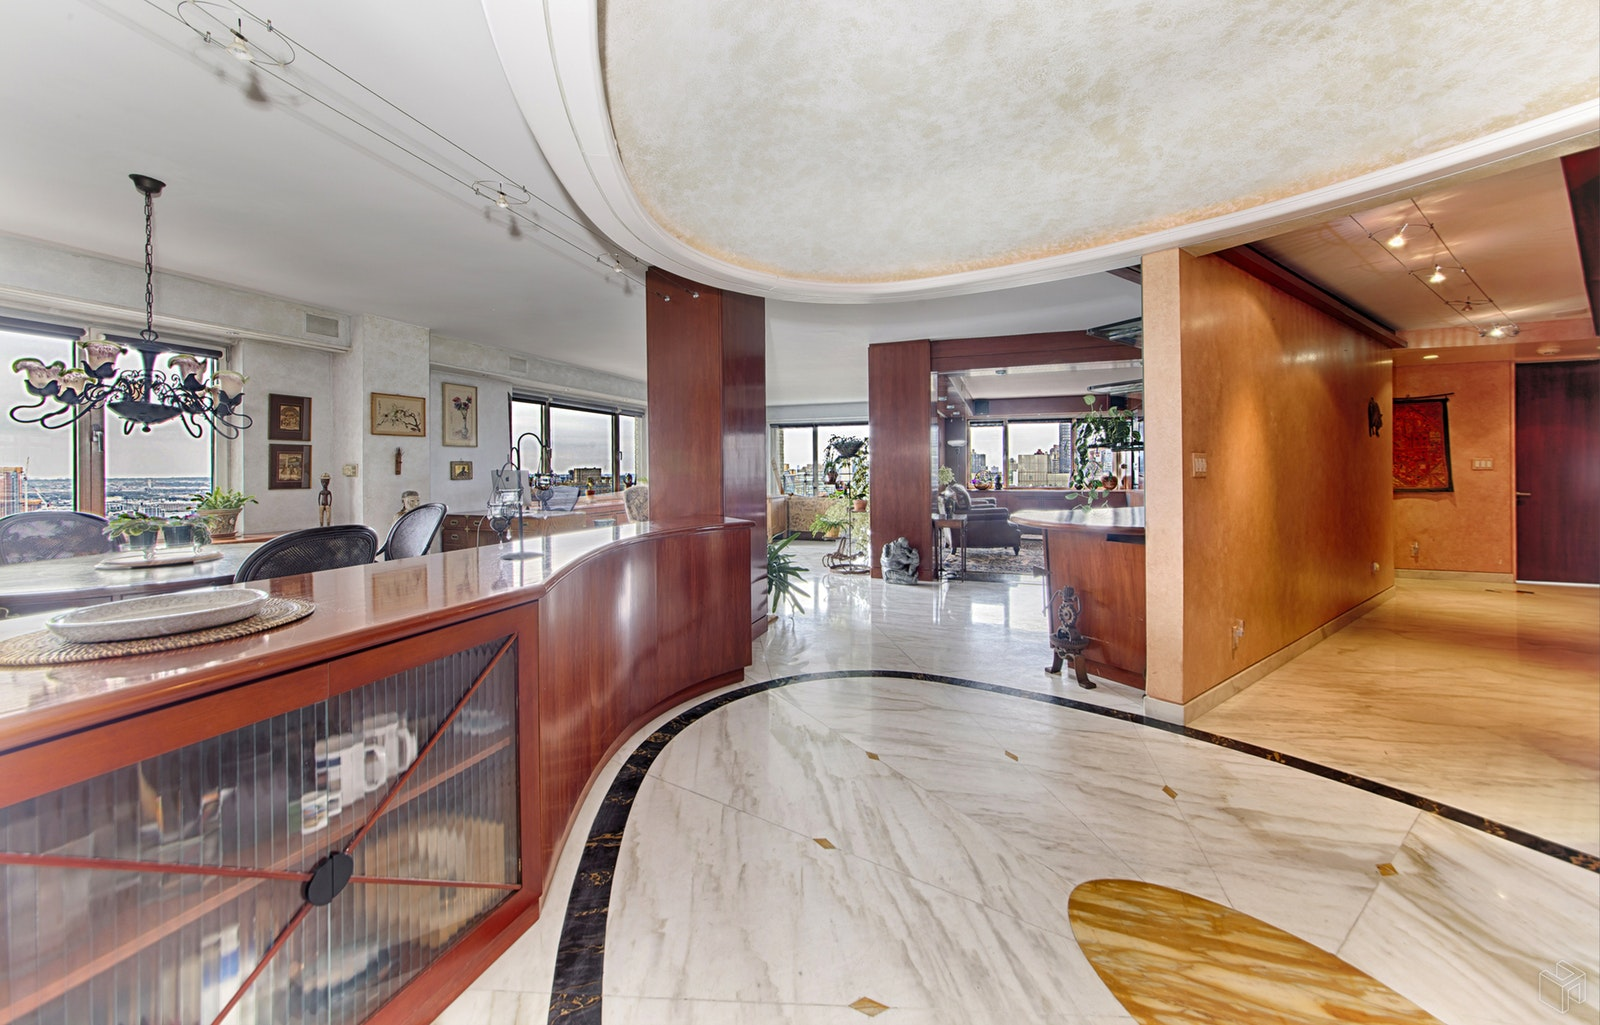 303 East 57th Street 37ab, Midtown East, NYC, 10022, $2,850,000, Property For Sale, Halstead Real Estate, Photo 1